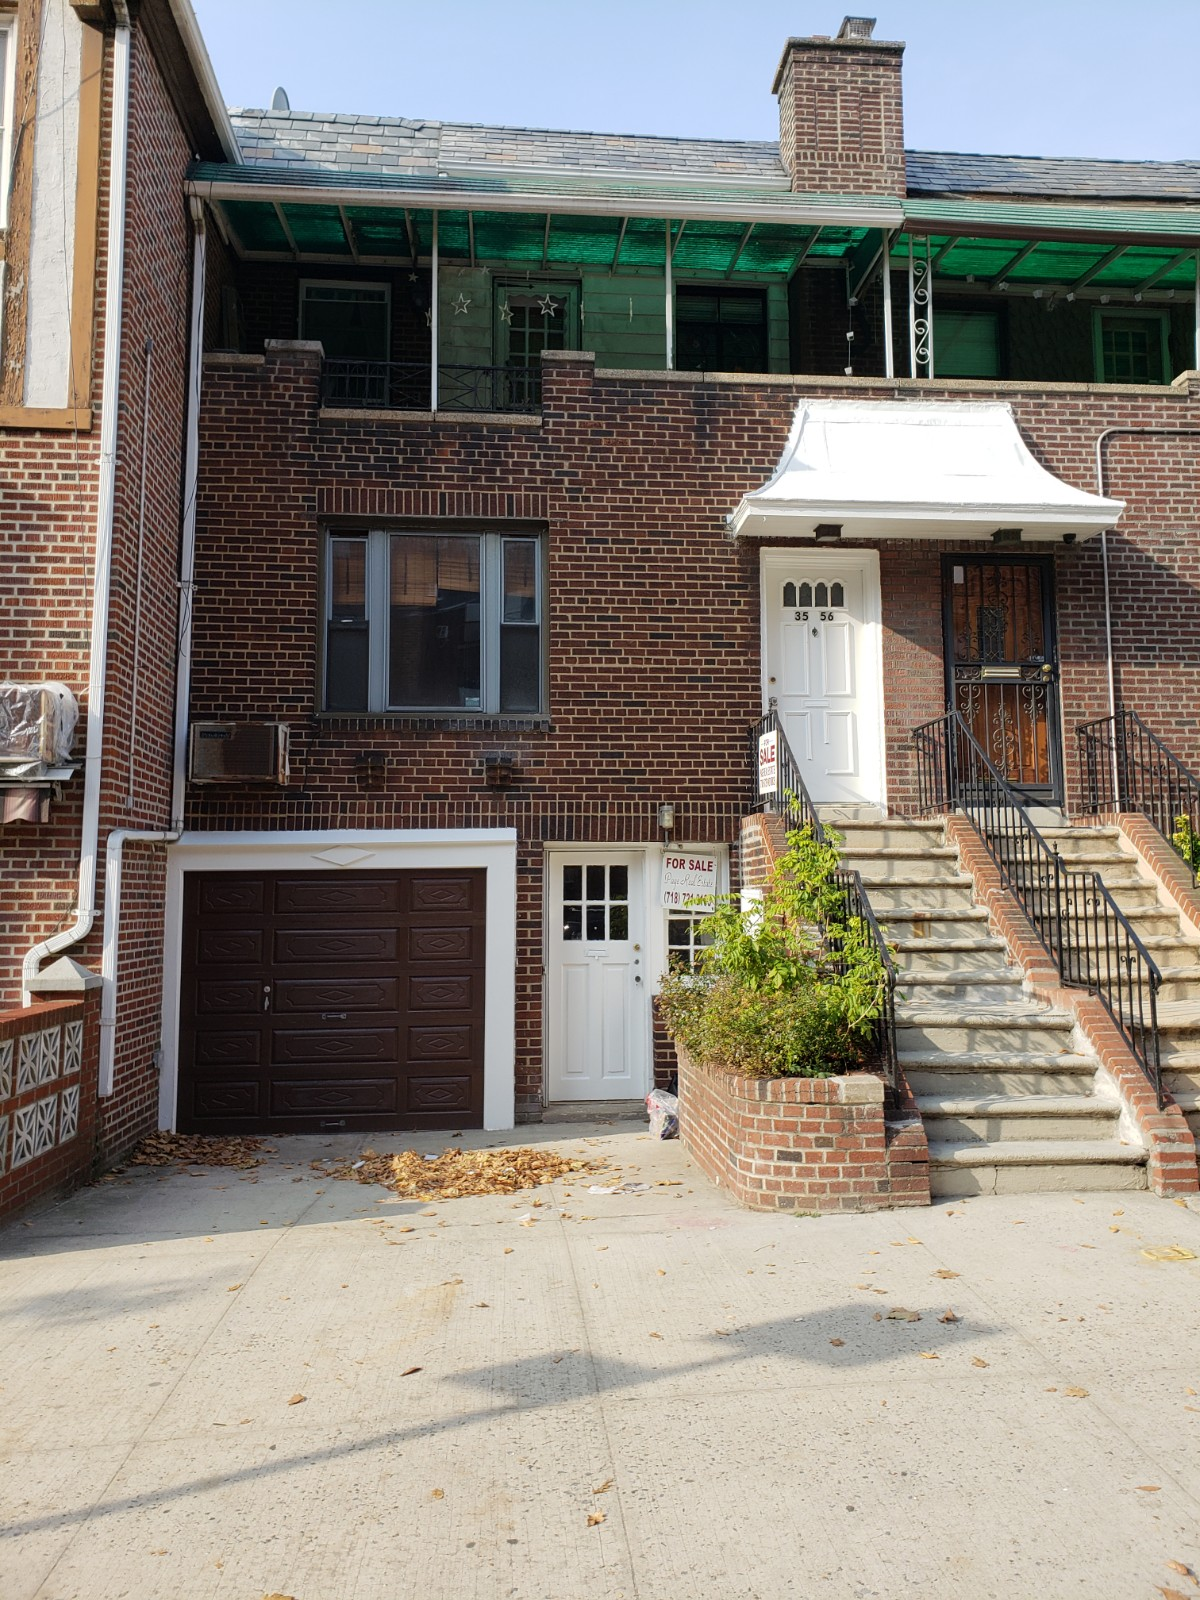 Garage For Sale Long Island Legal 3 Family House W Garage And Backyard For Sale Now Under